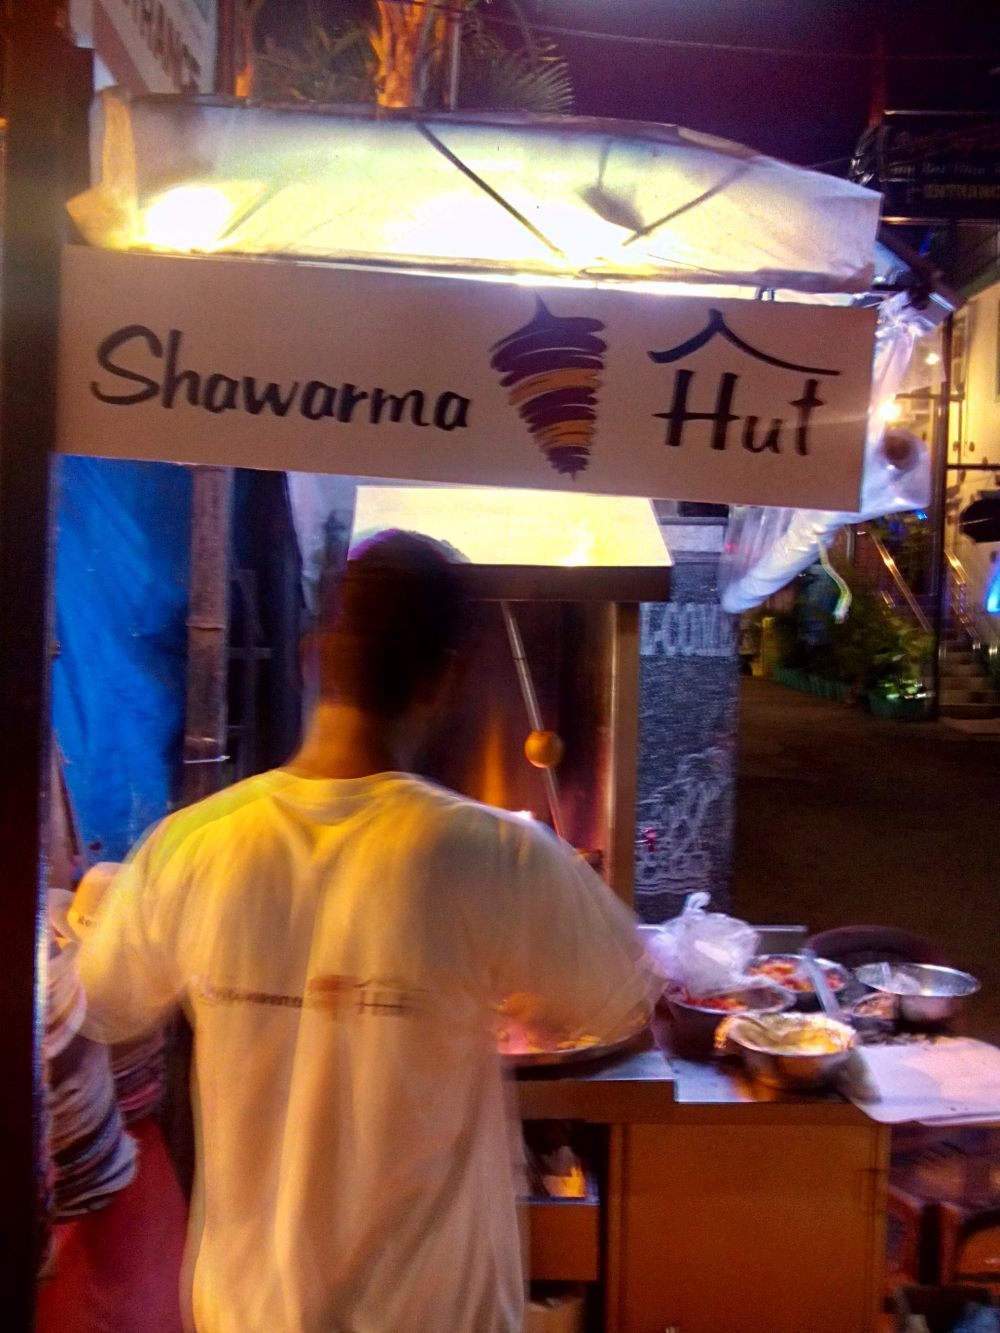 Relishing Barbecue 'Shawarma Style': Review-Shawarma Hut, Shawarma